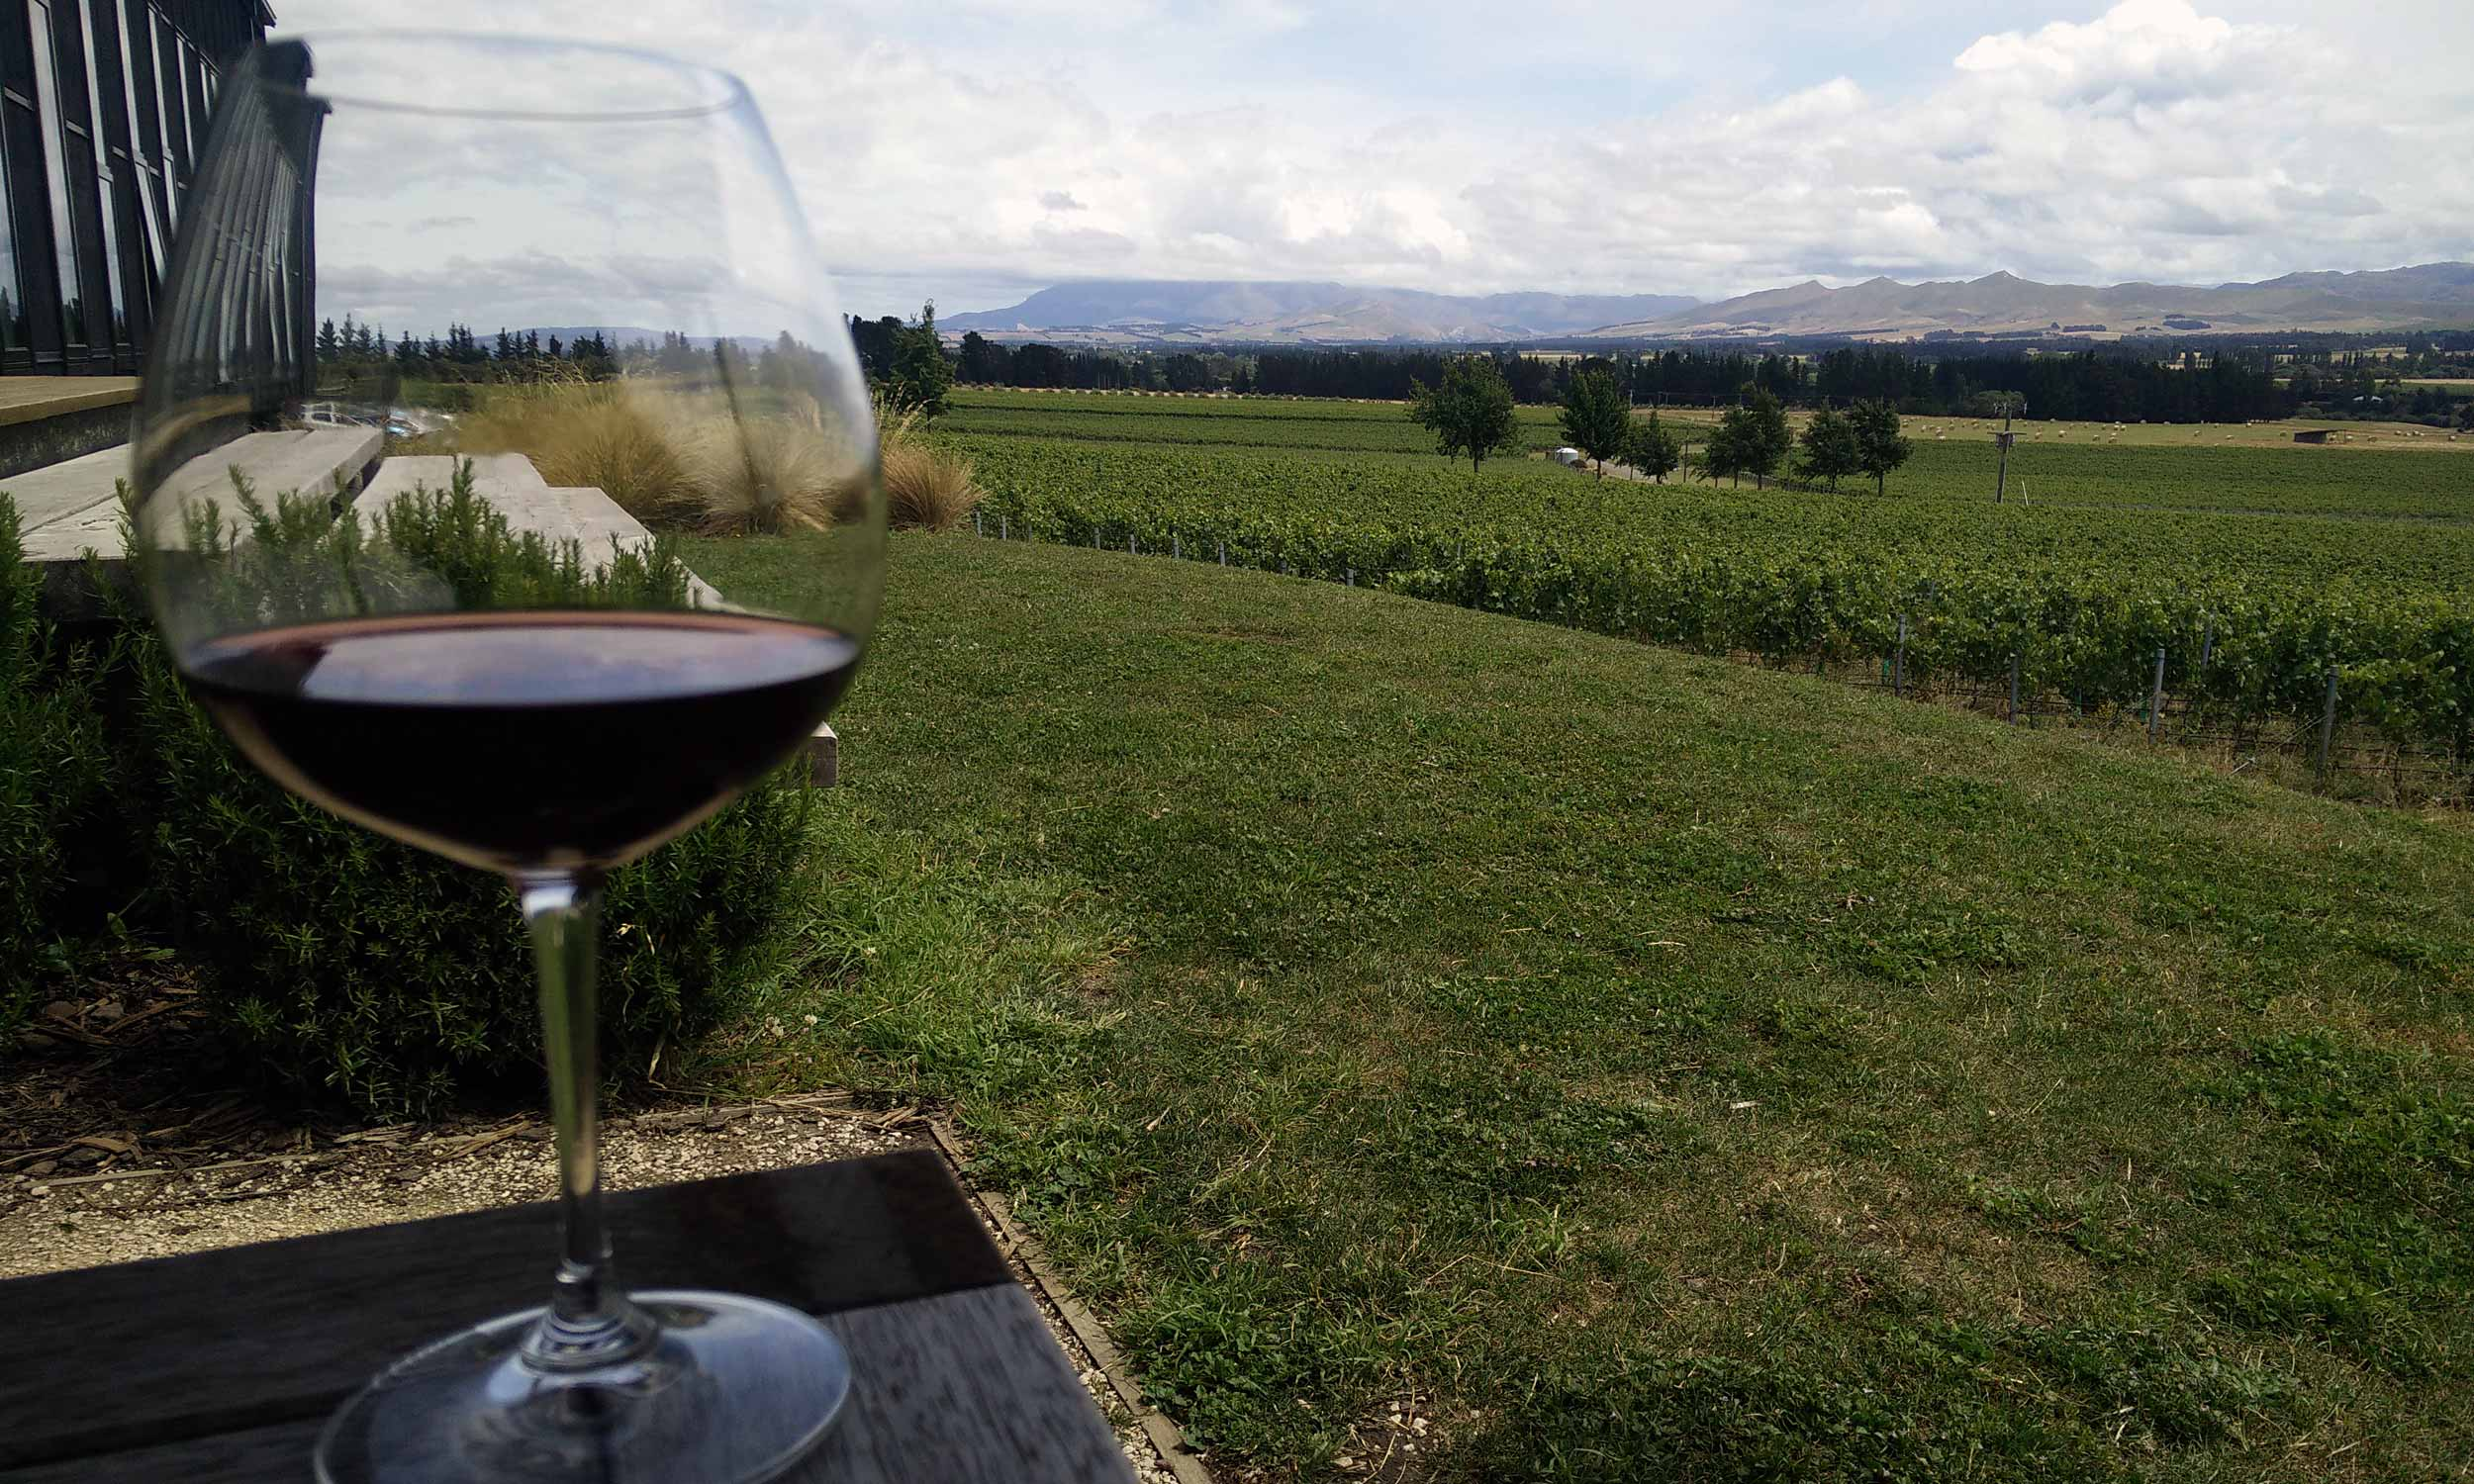 Red wine in Waipara, New Zealand